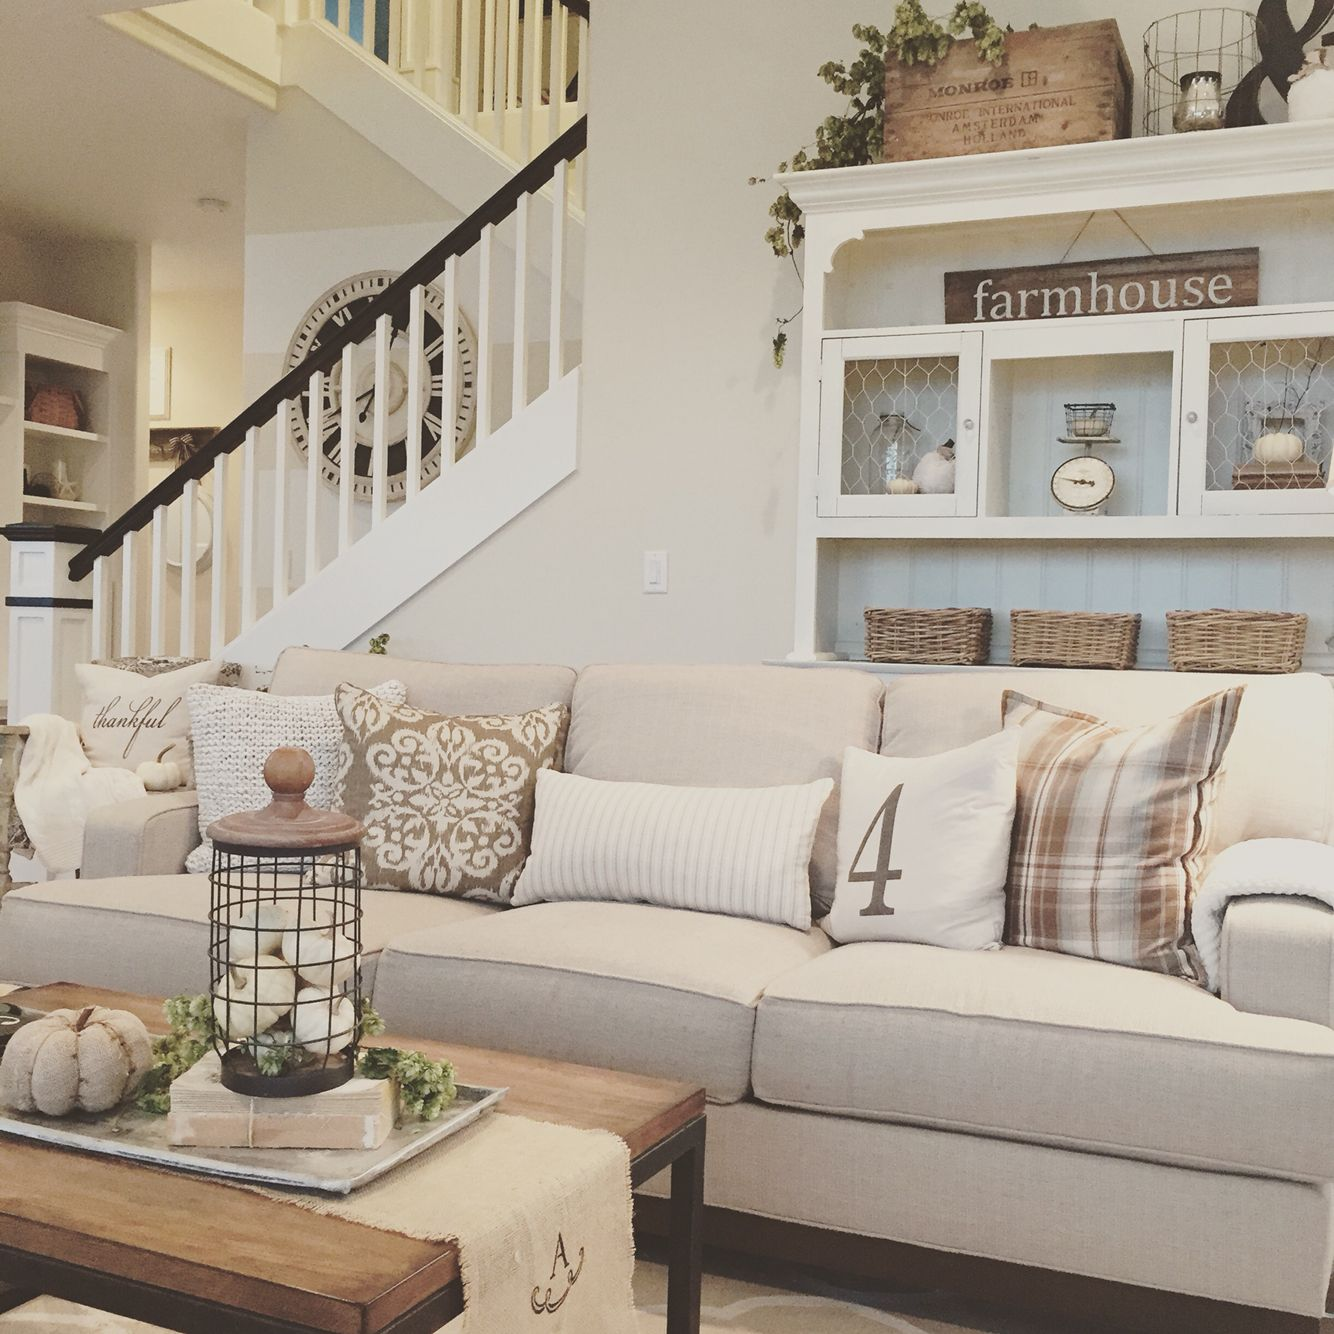 Cozy Modern Farmhouse Living Room Interior Design By Janna